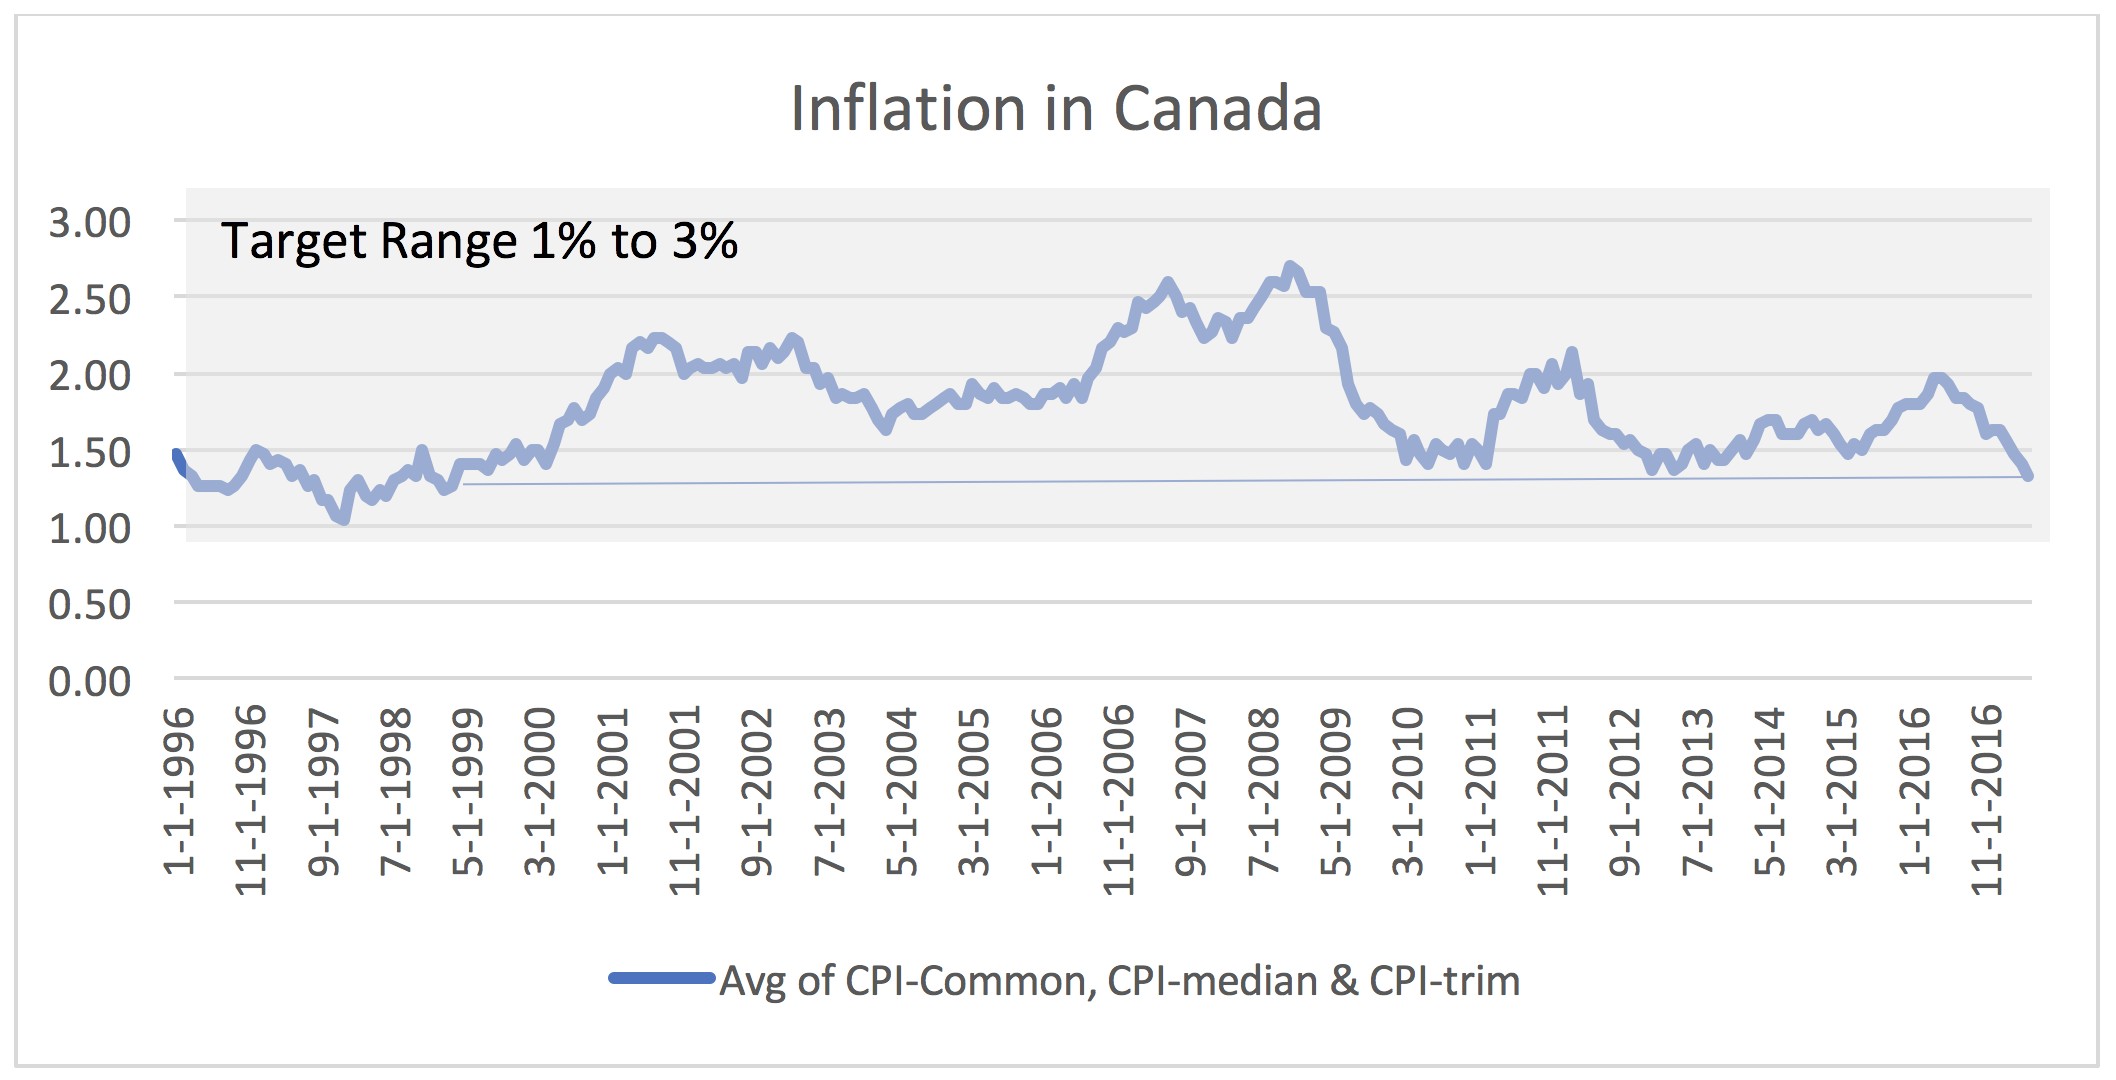 Inflation in Canada